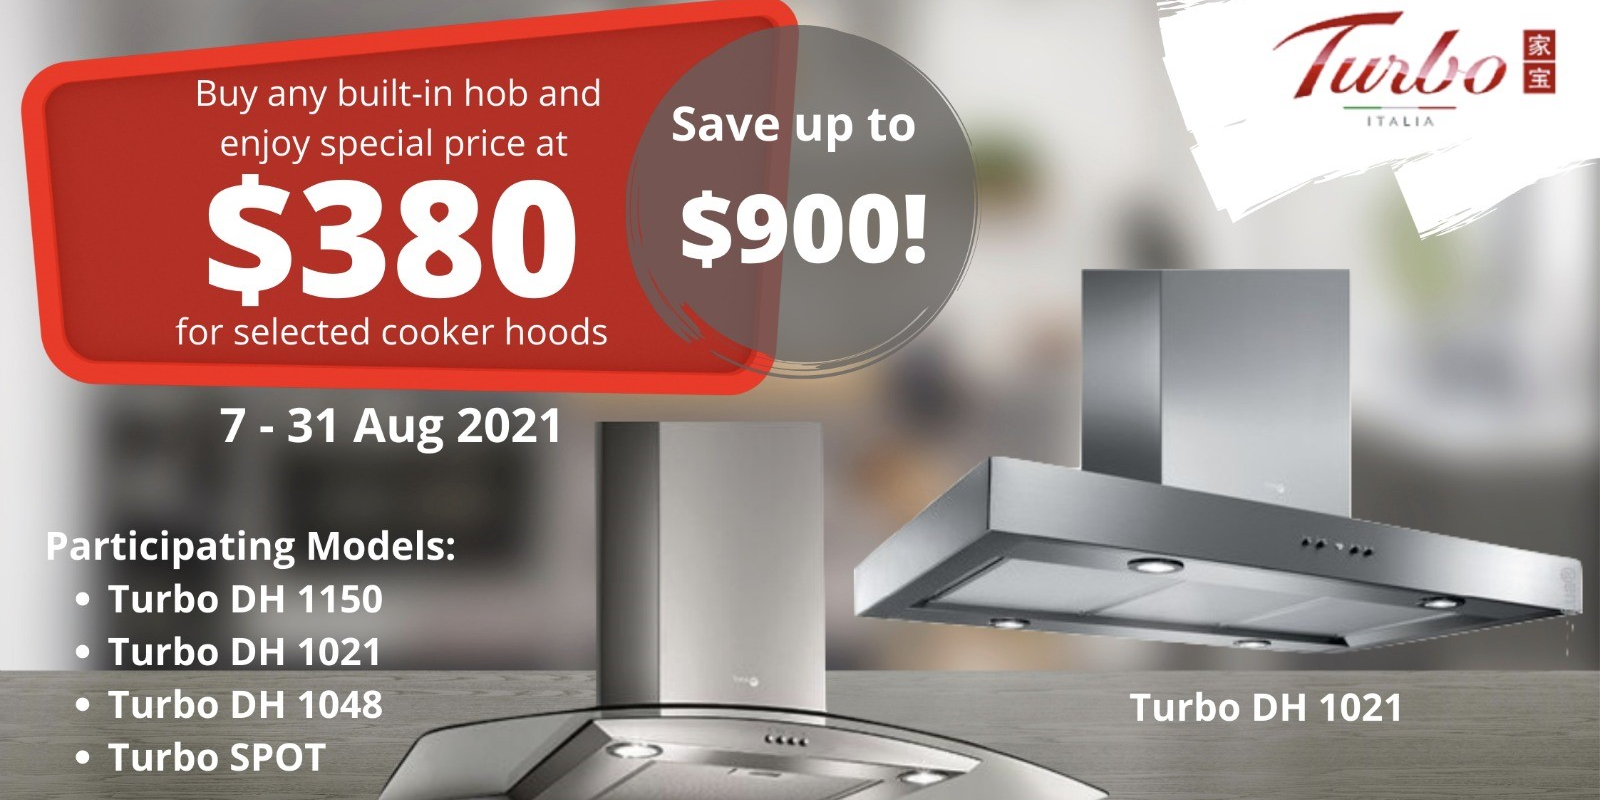 [Turbo Italia] Enjoy Special Price at $380 for Selected Cooker Hood w/ Any Purchase of Built-in hob!